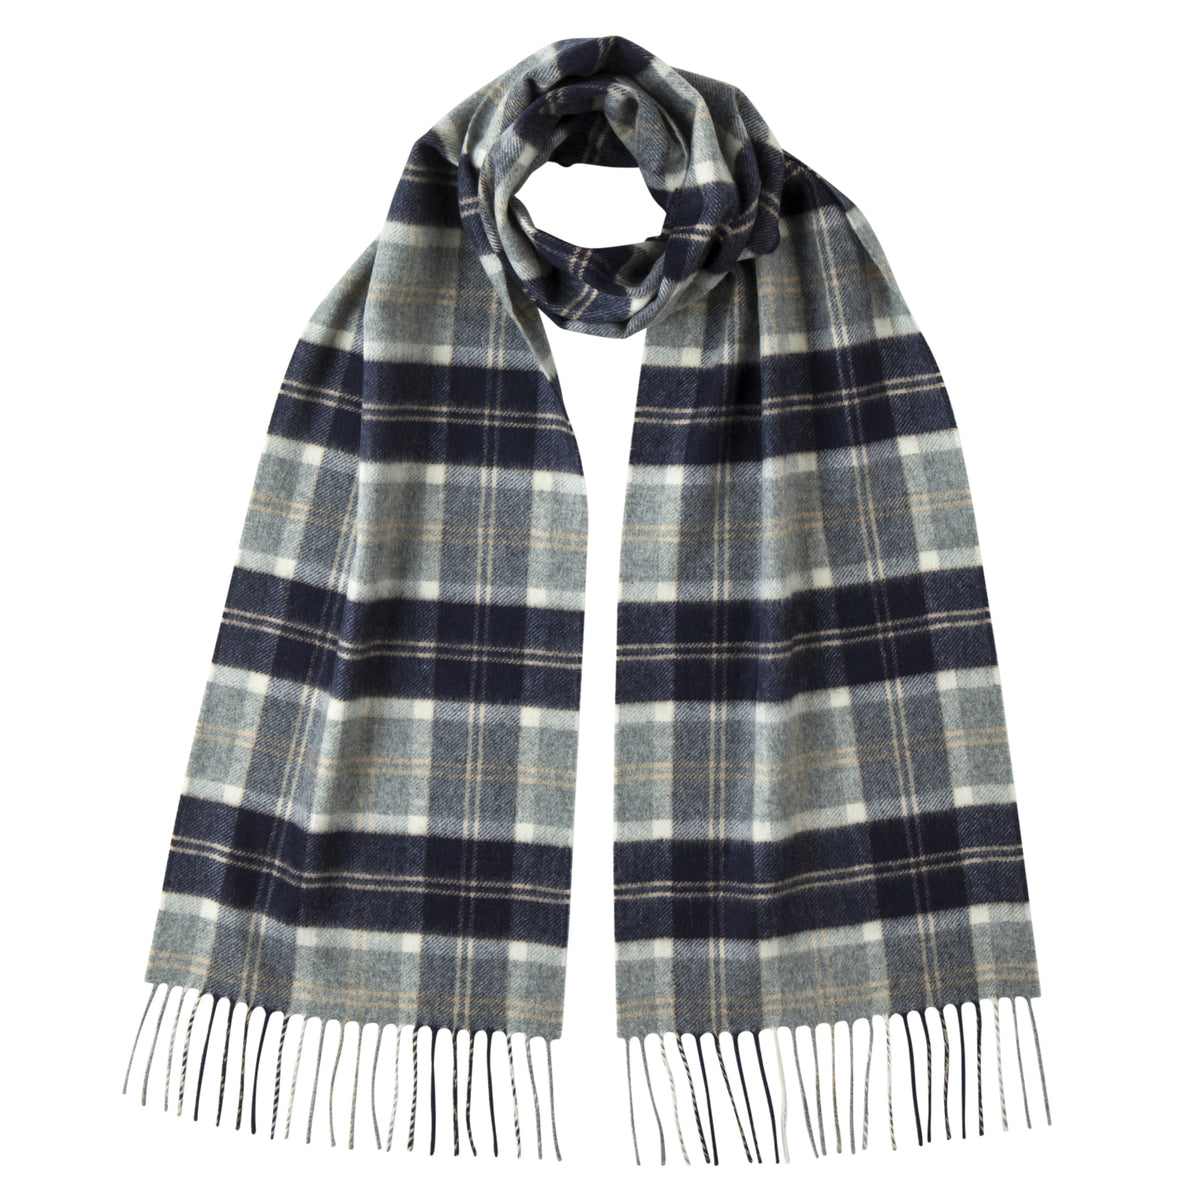 Johnsons of Elgin | Silver Bannockbane Tartan Check Cashmere Scarf | buy at The Cashmere Choice | London